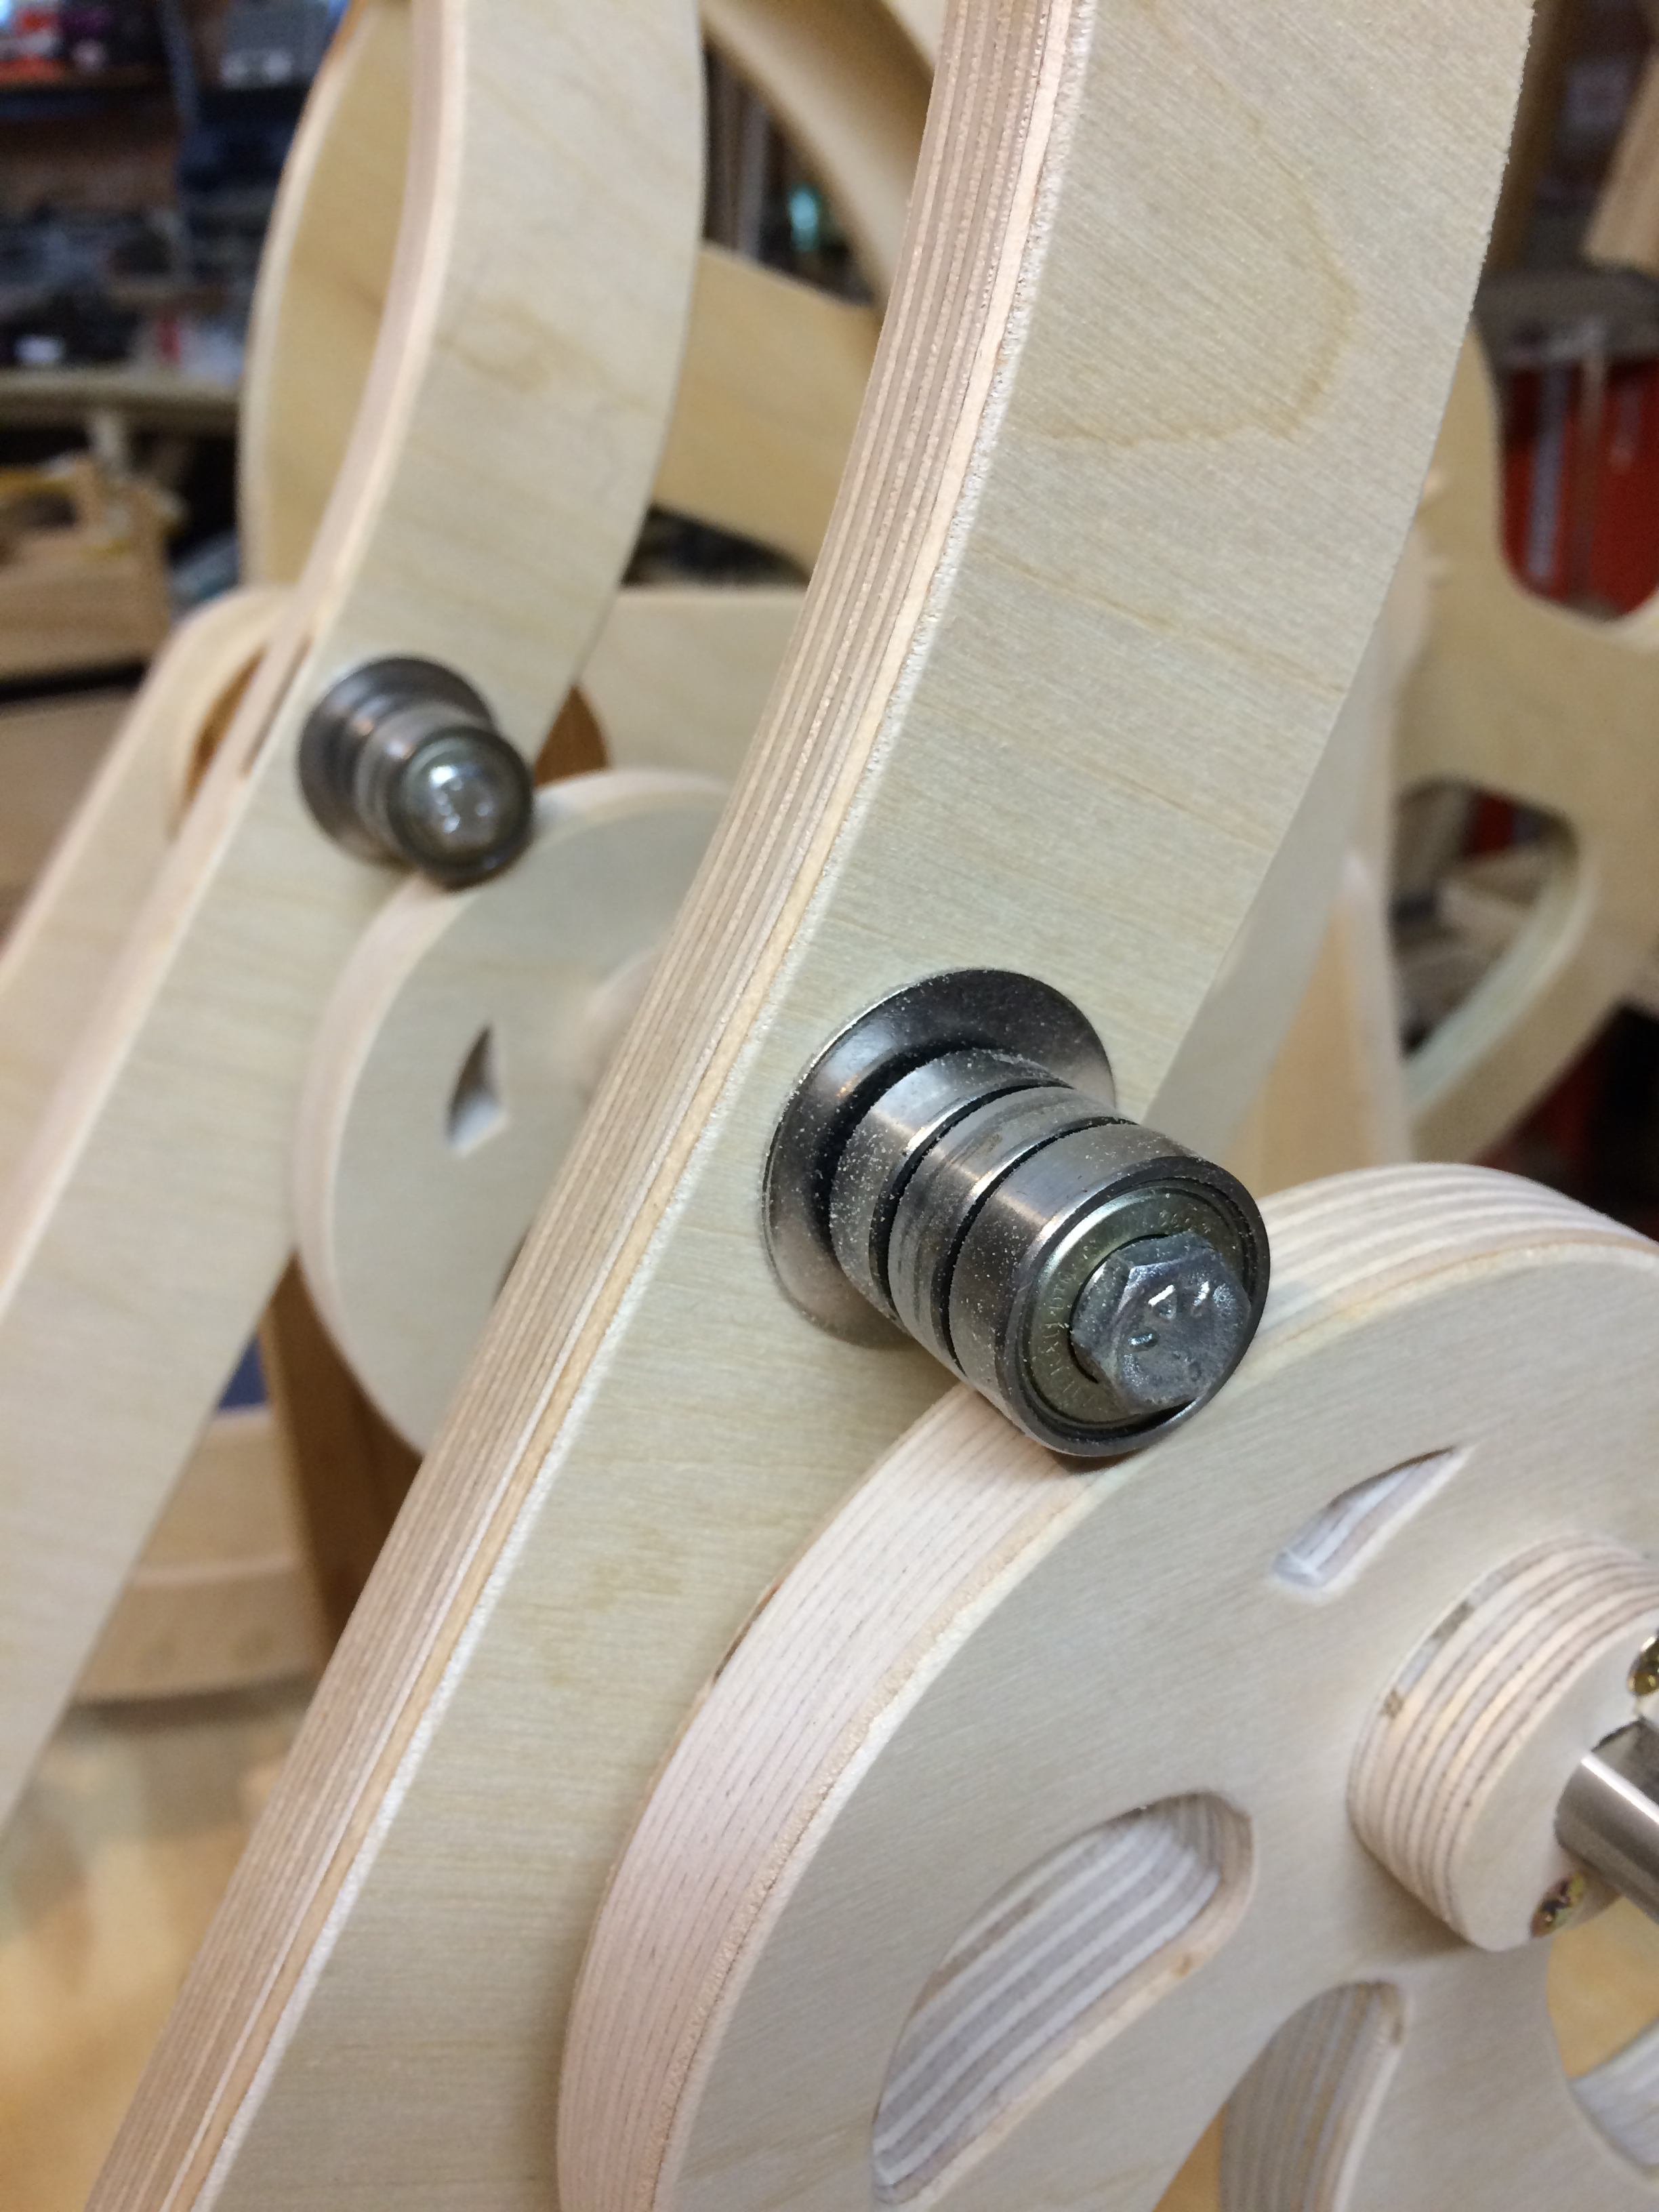 roller bearings on lever arms